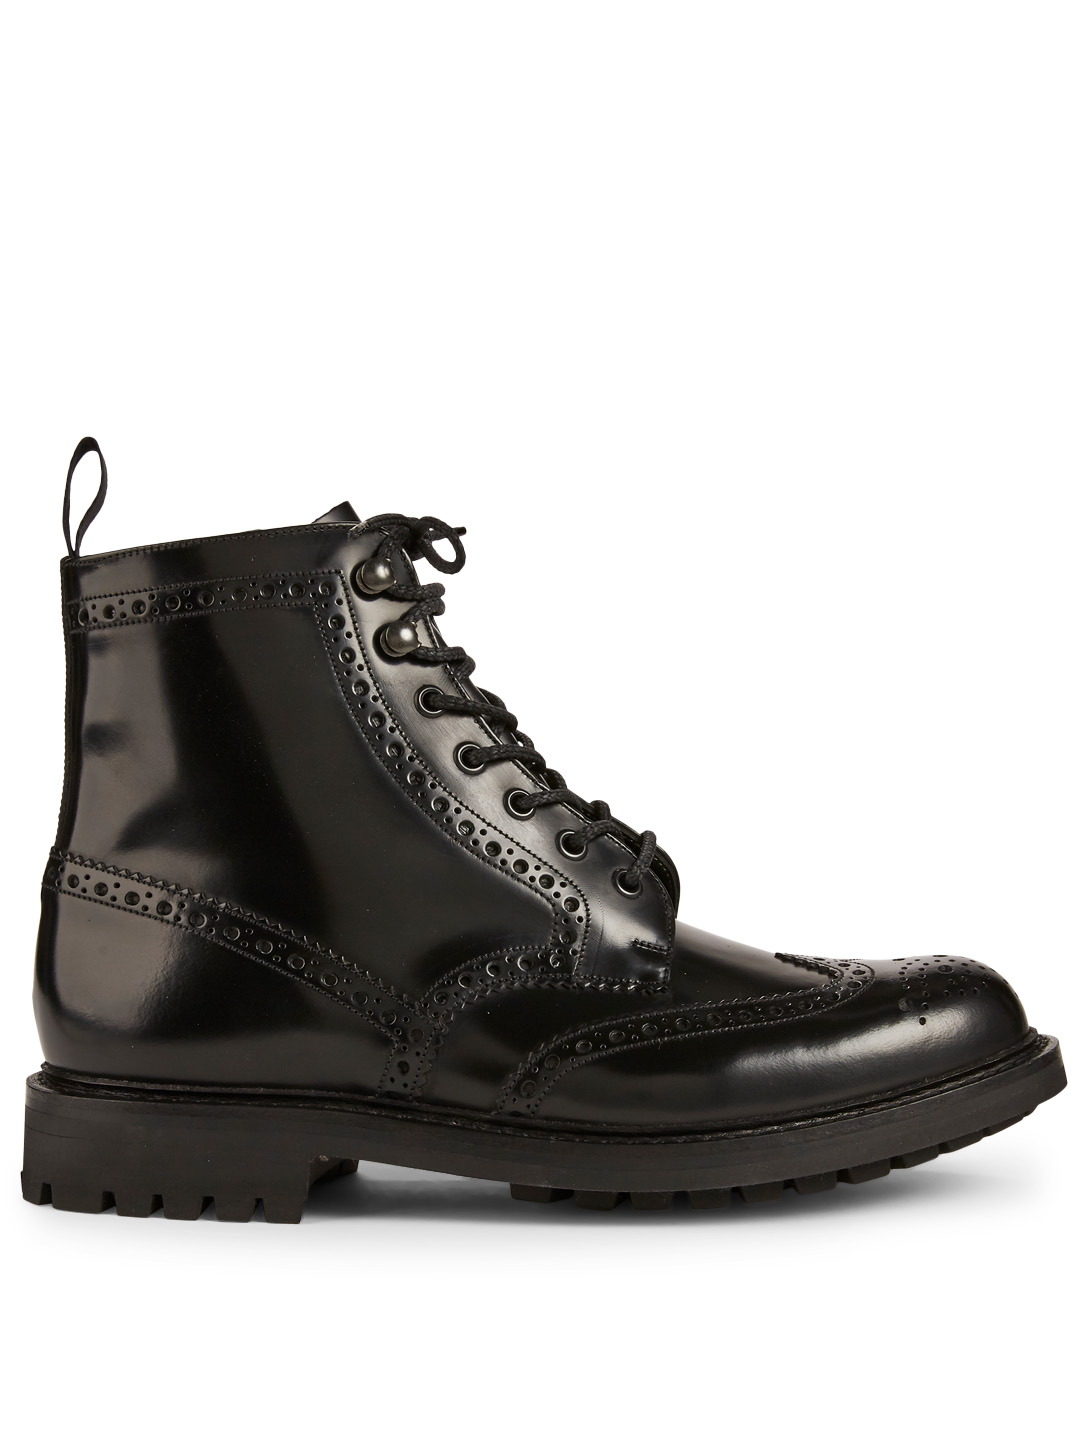 CHURCH'S Mac Farlane Patent Leather Brogue Lace-Up Boots Men's Black